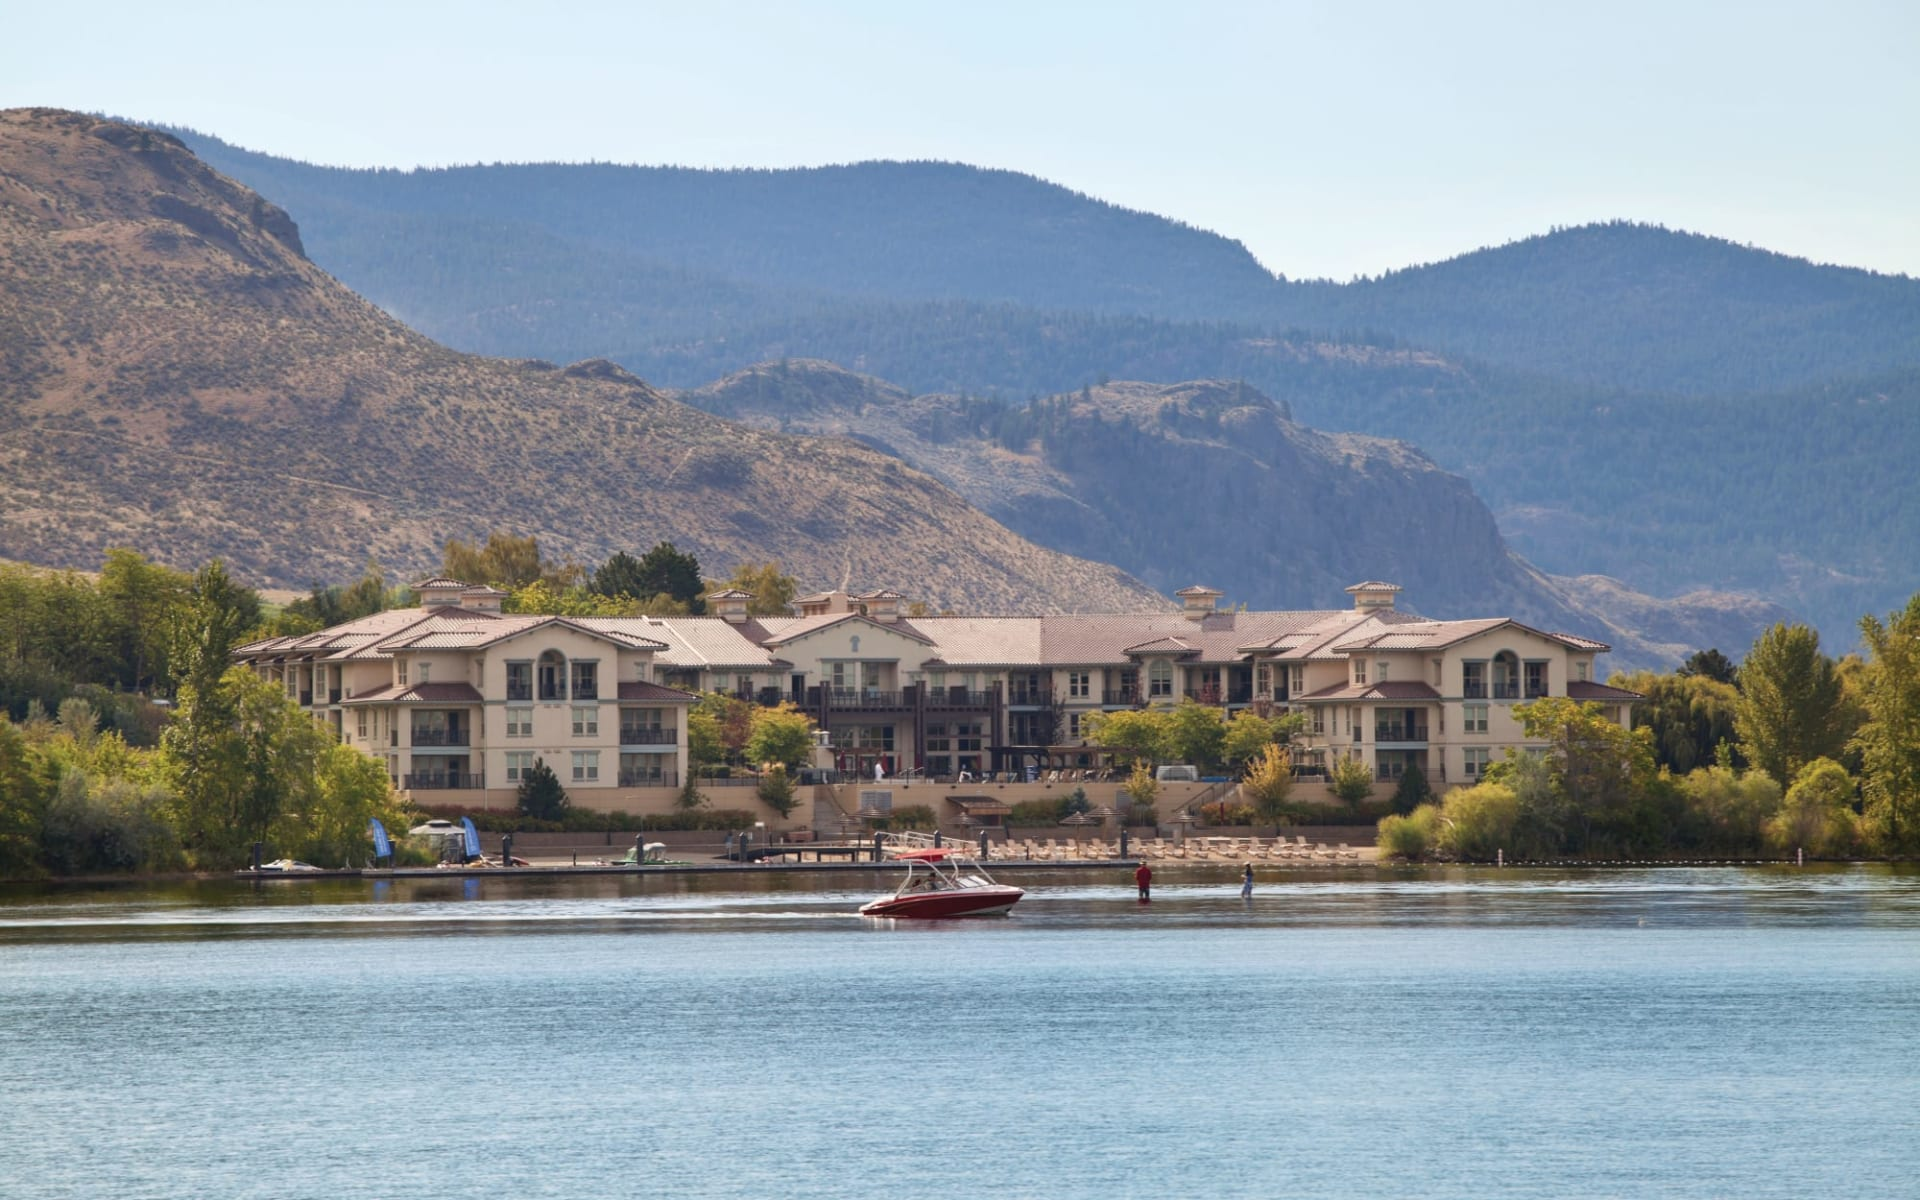 Walnut Beach Resort in Osoyoos:  activ_Walnut Beach Resort_Boating_cWBR